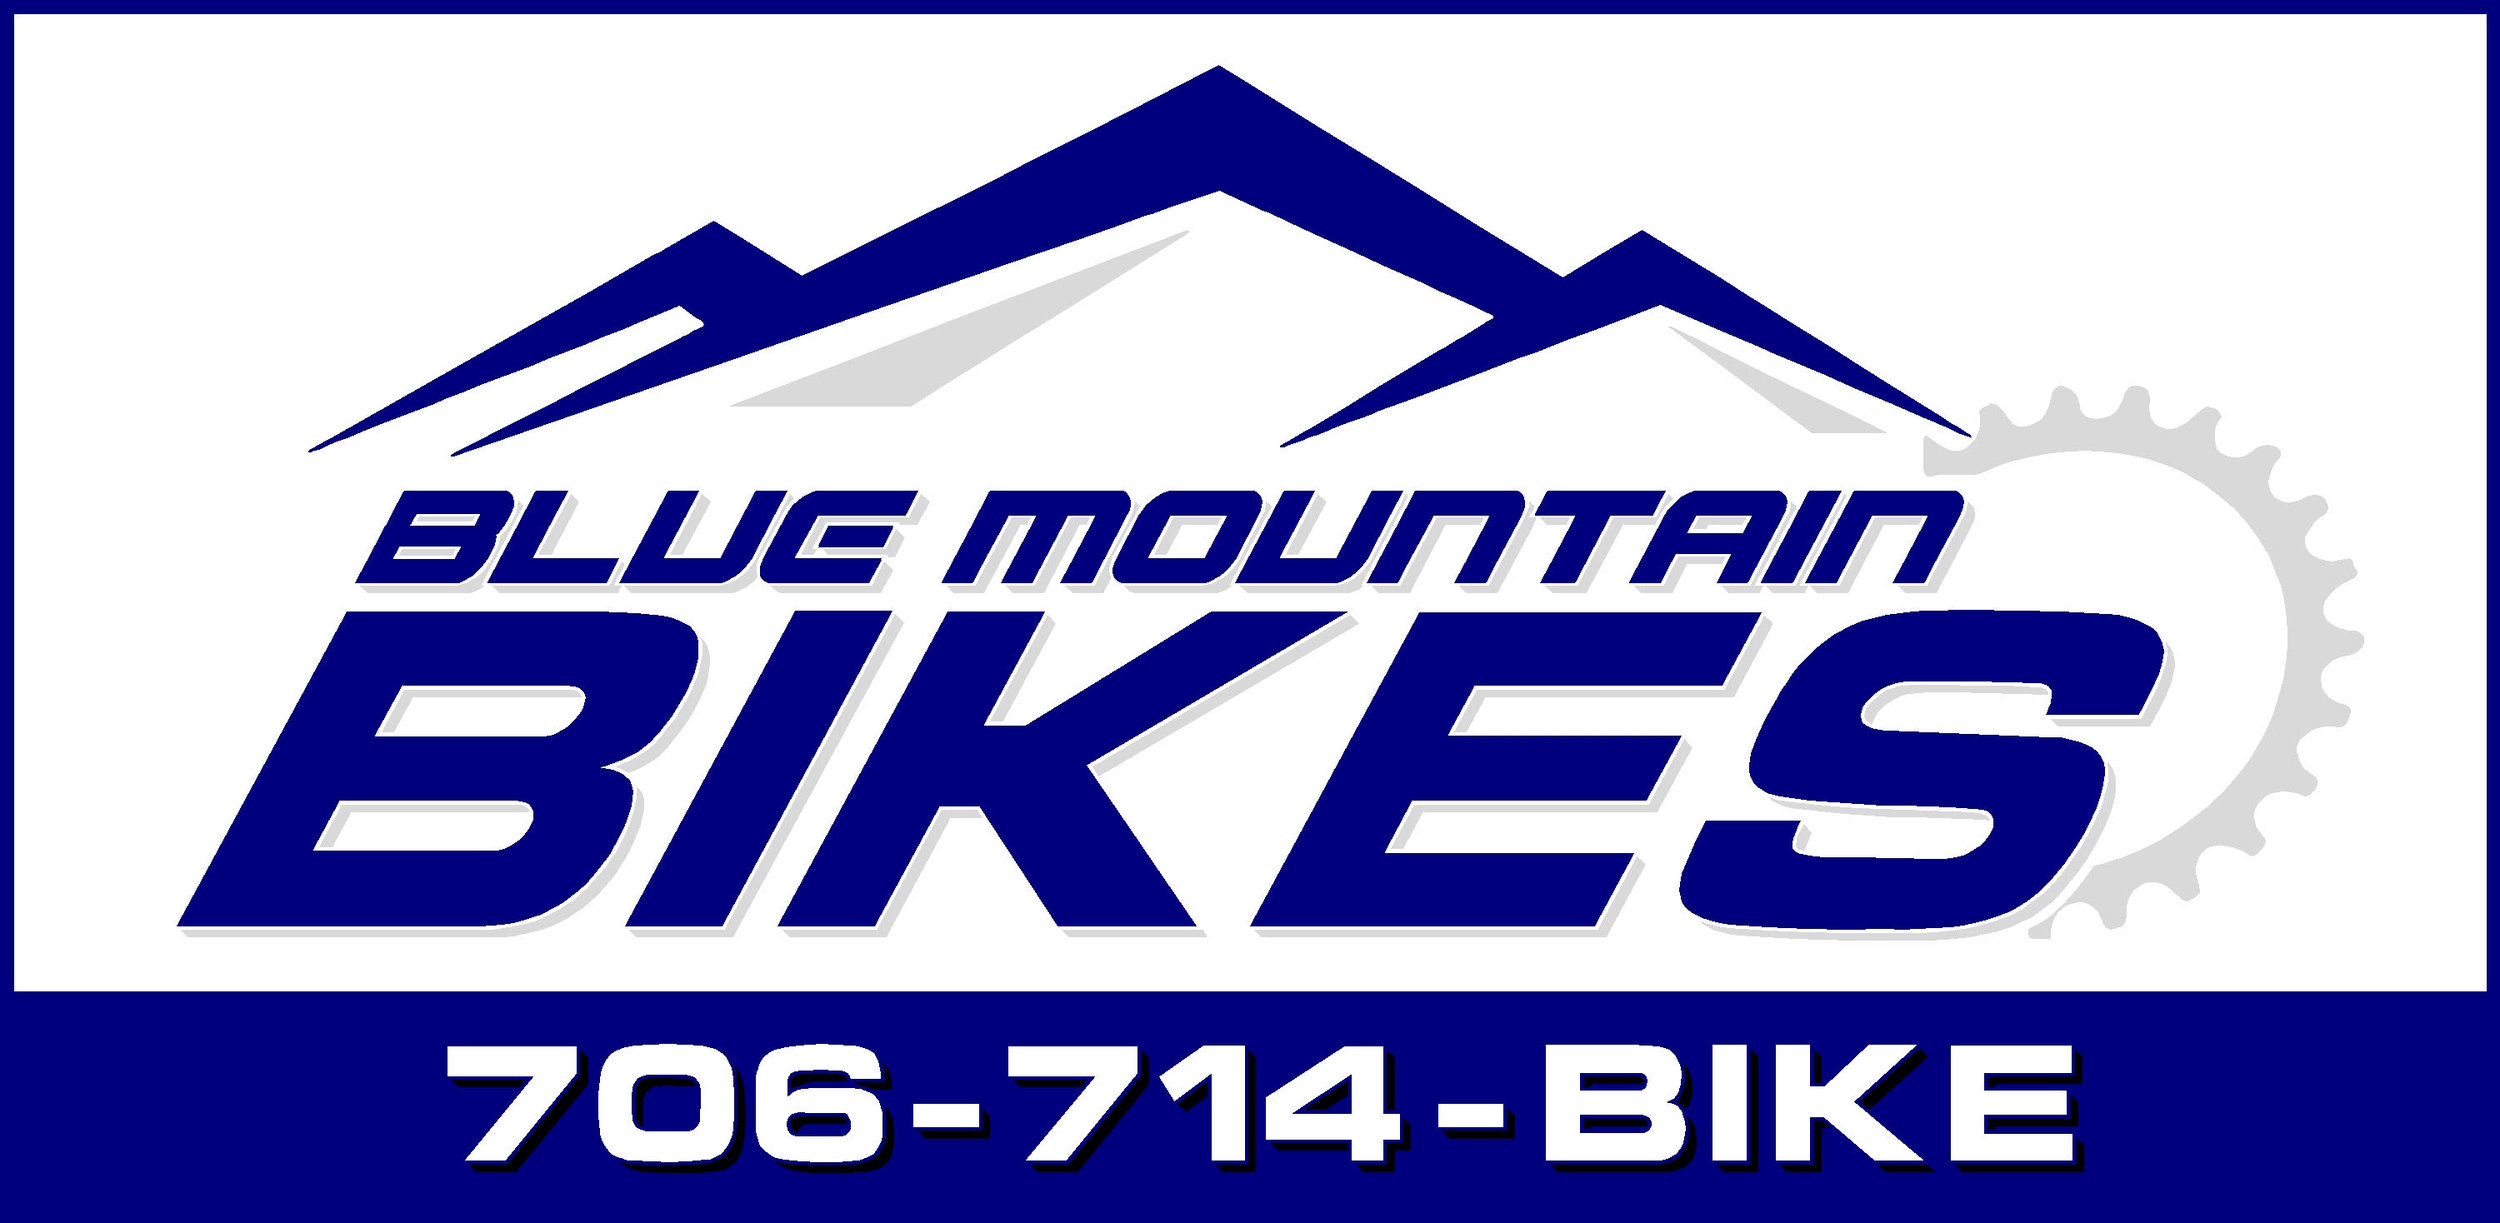 Powered by Blue Mountain Bikes